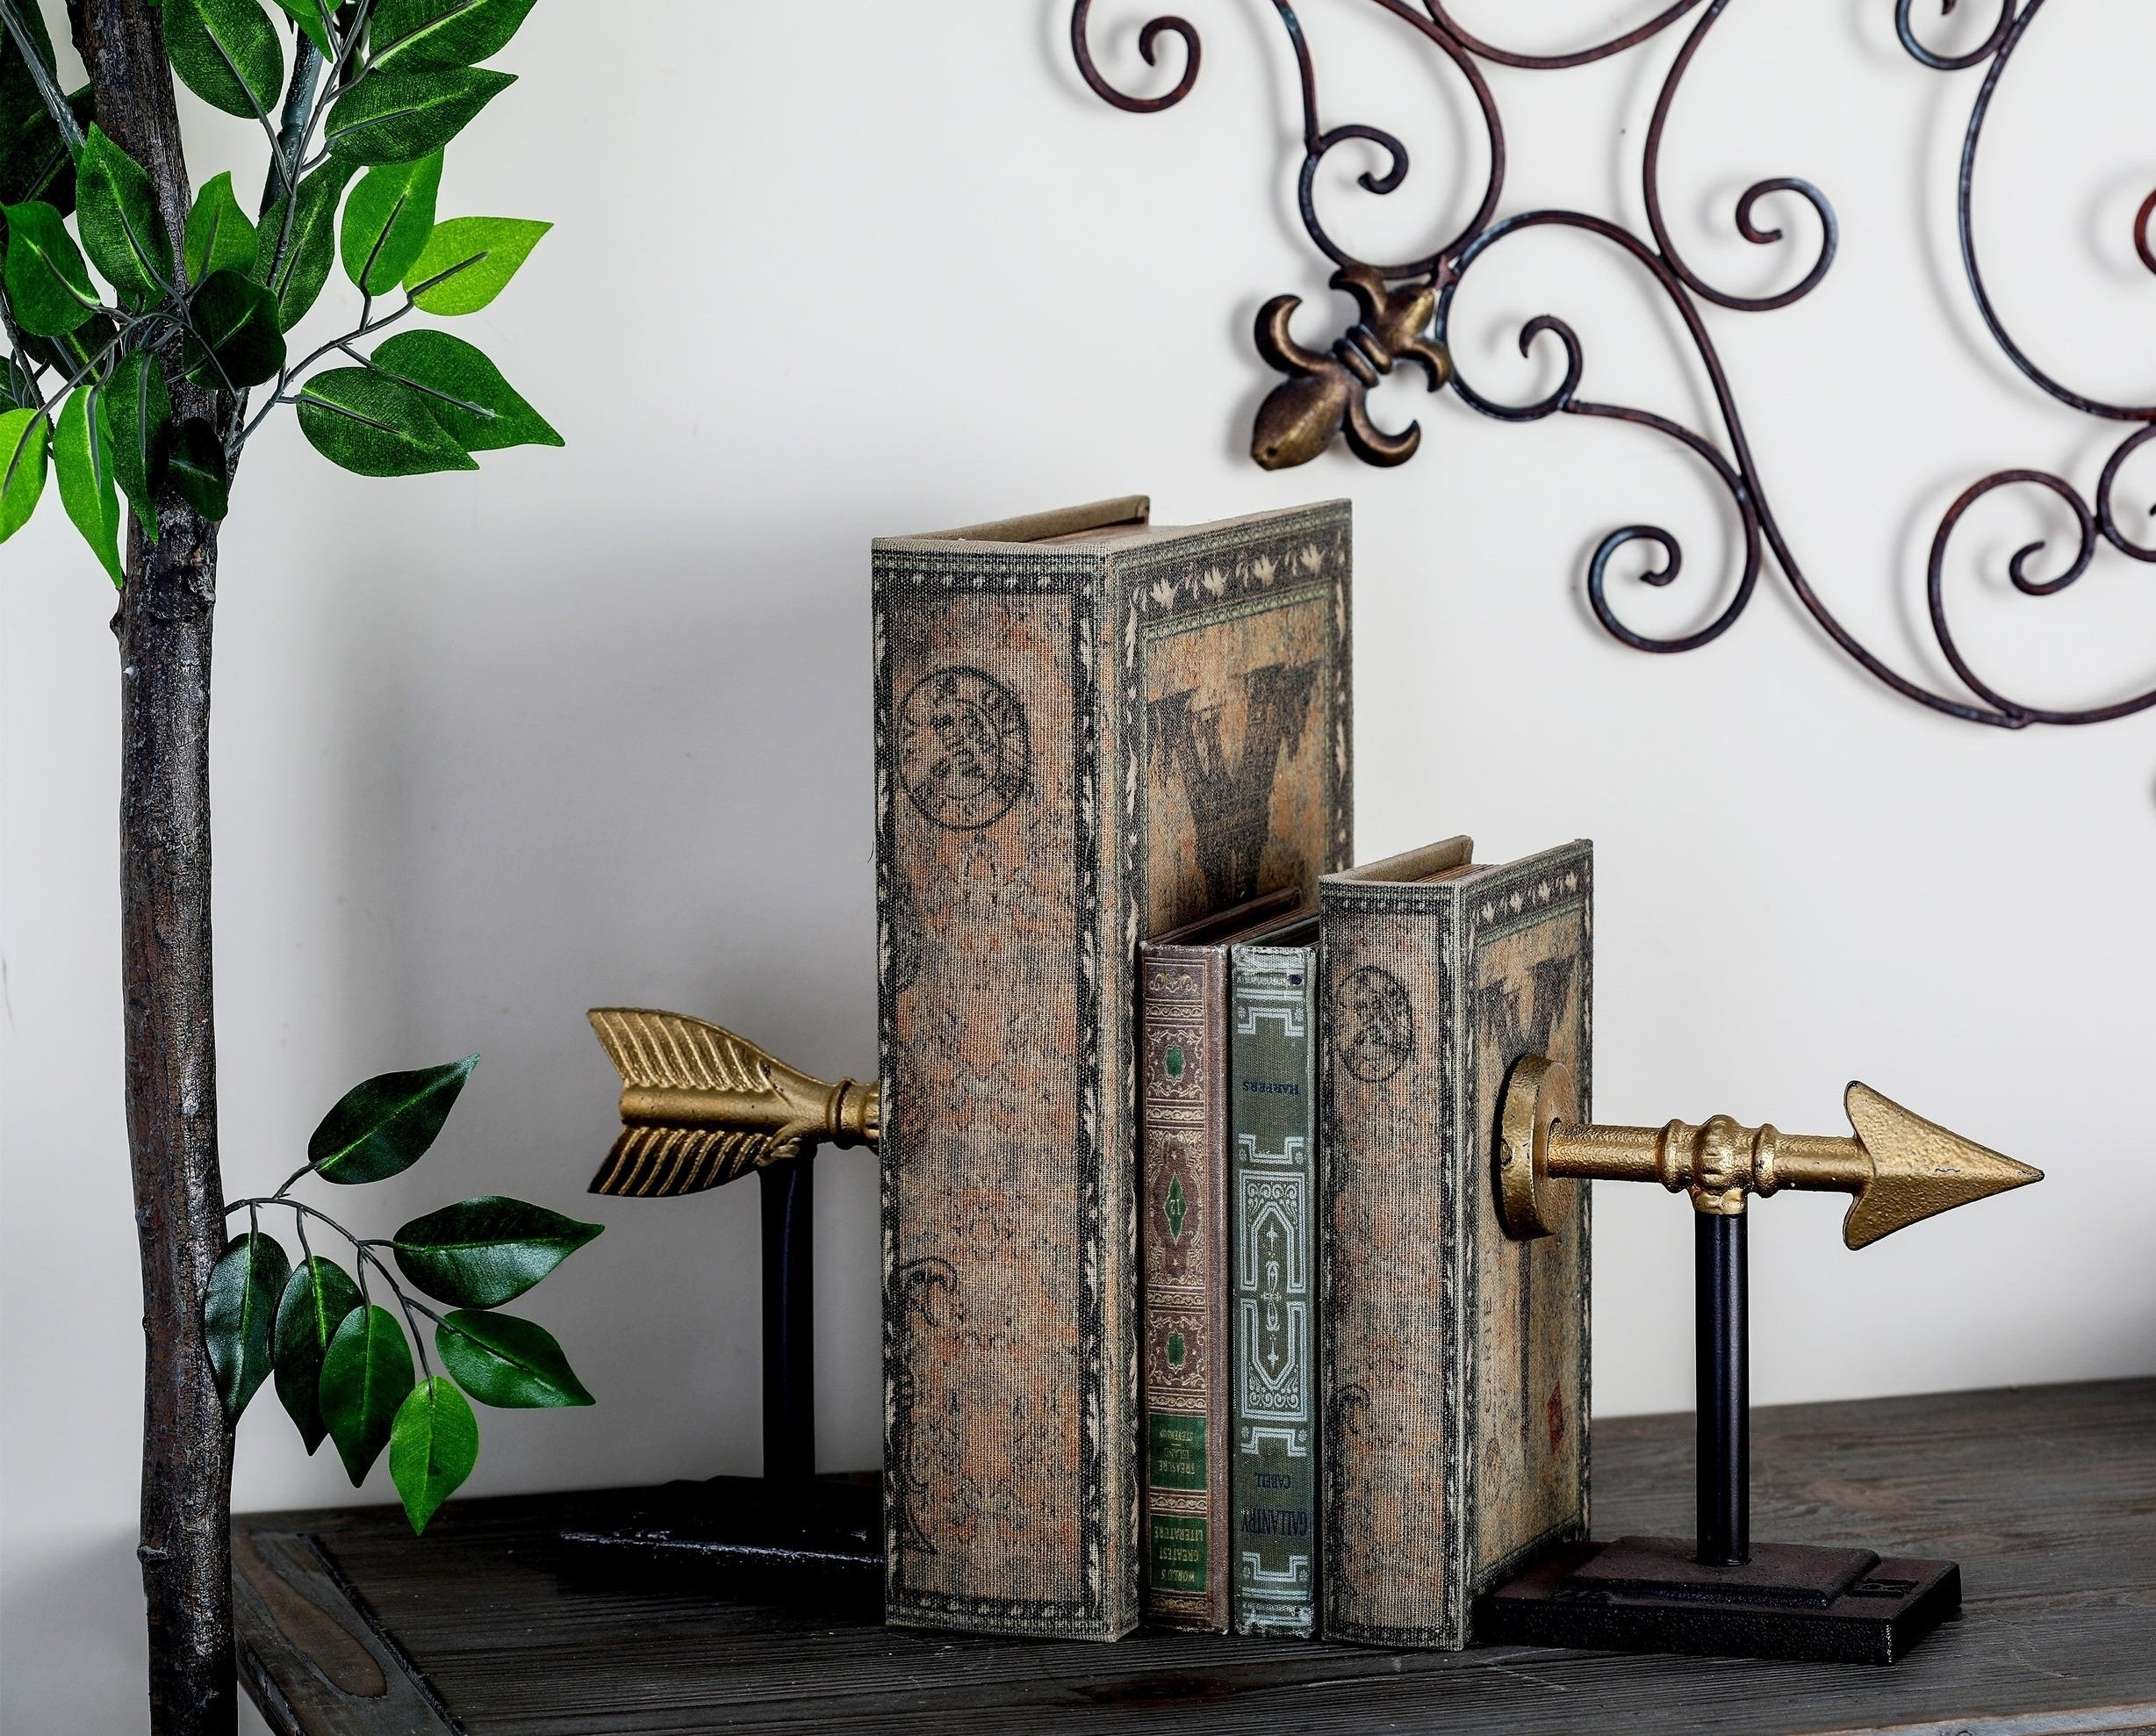 The black and gold bookends